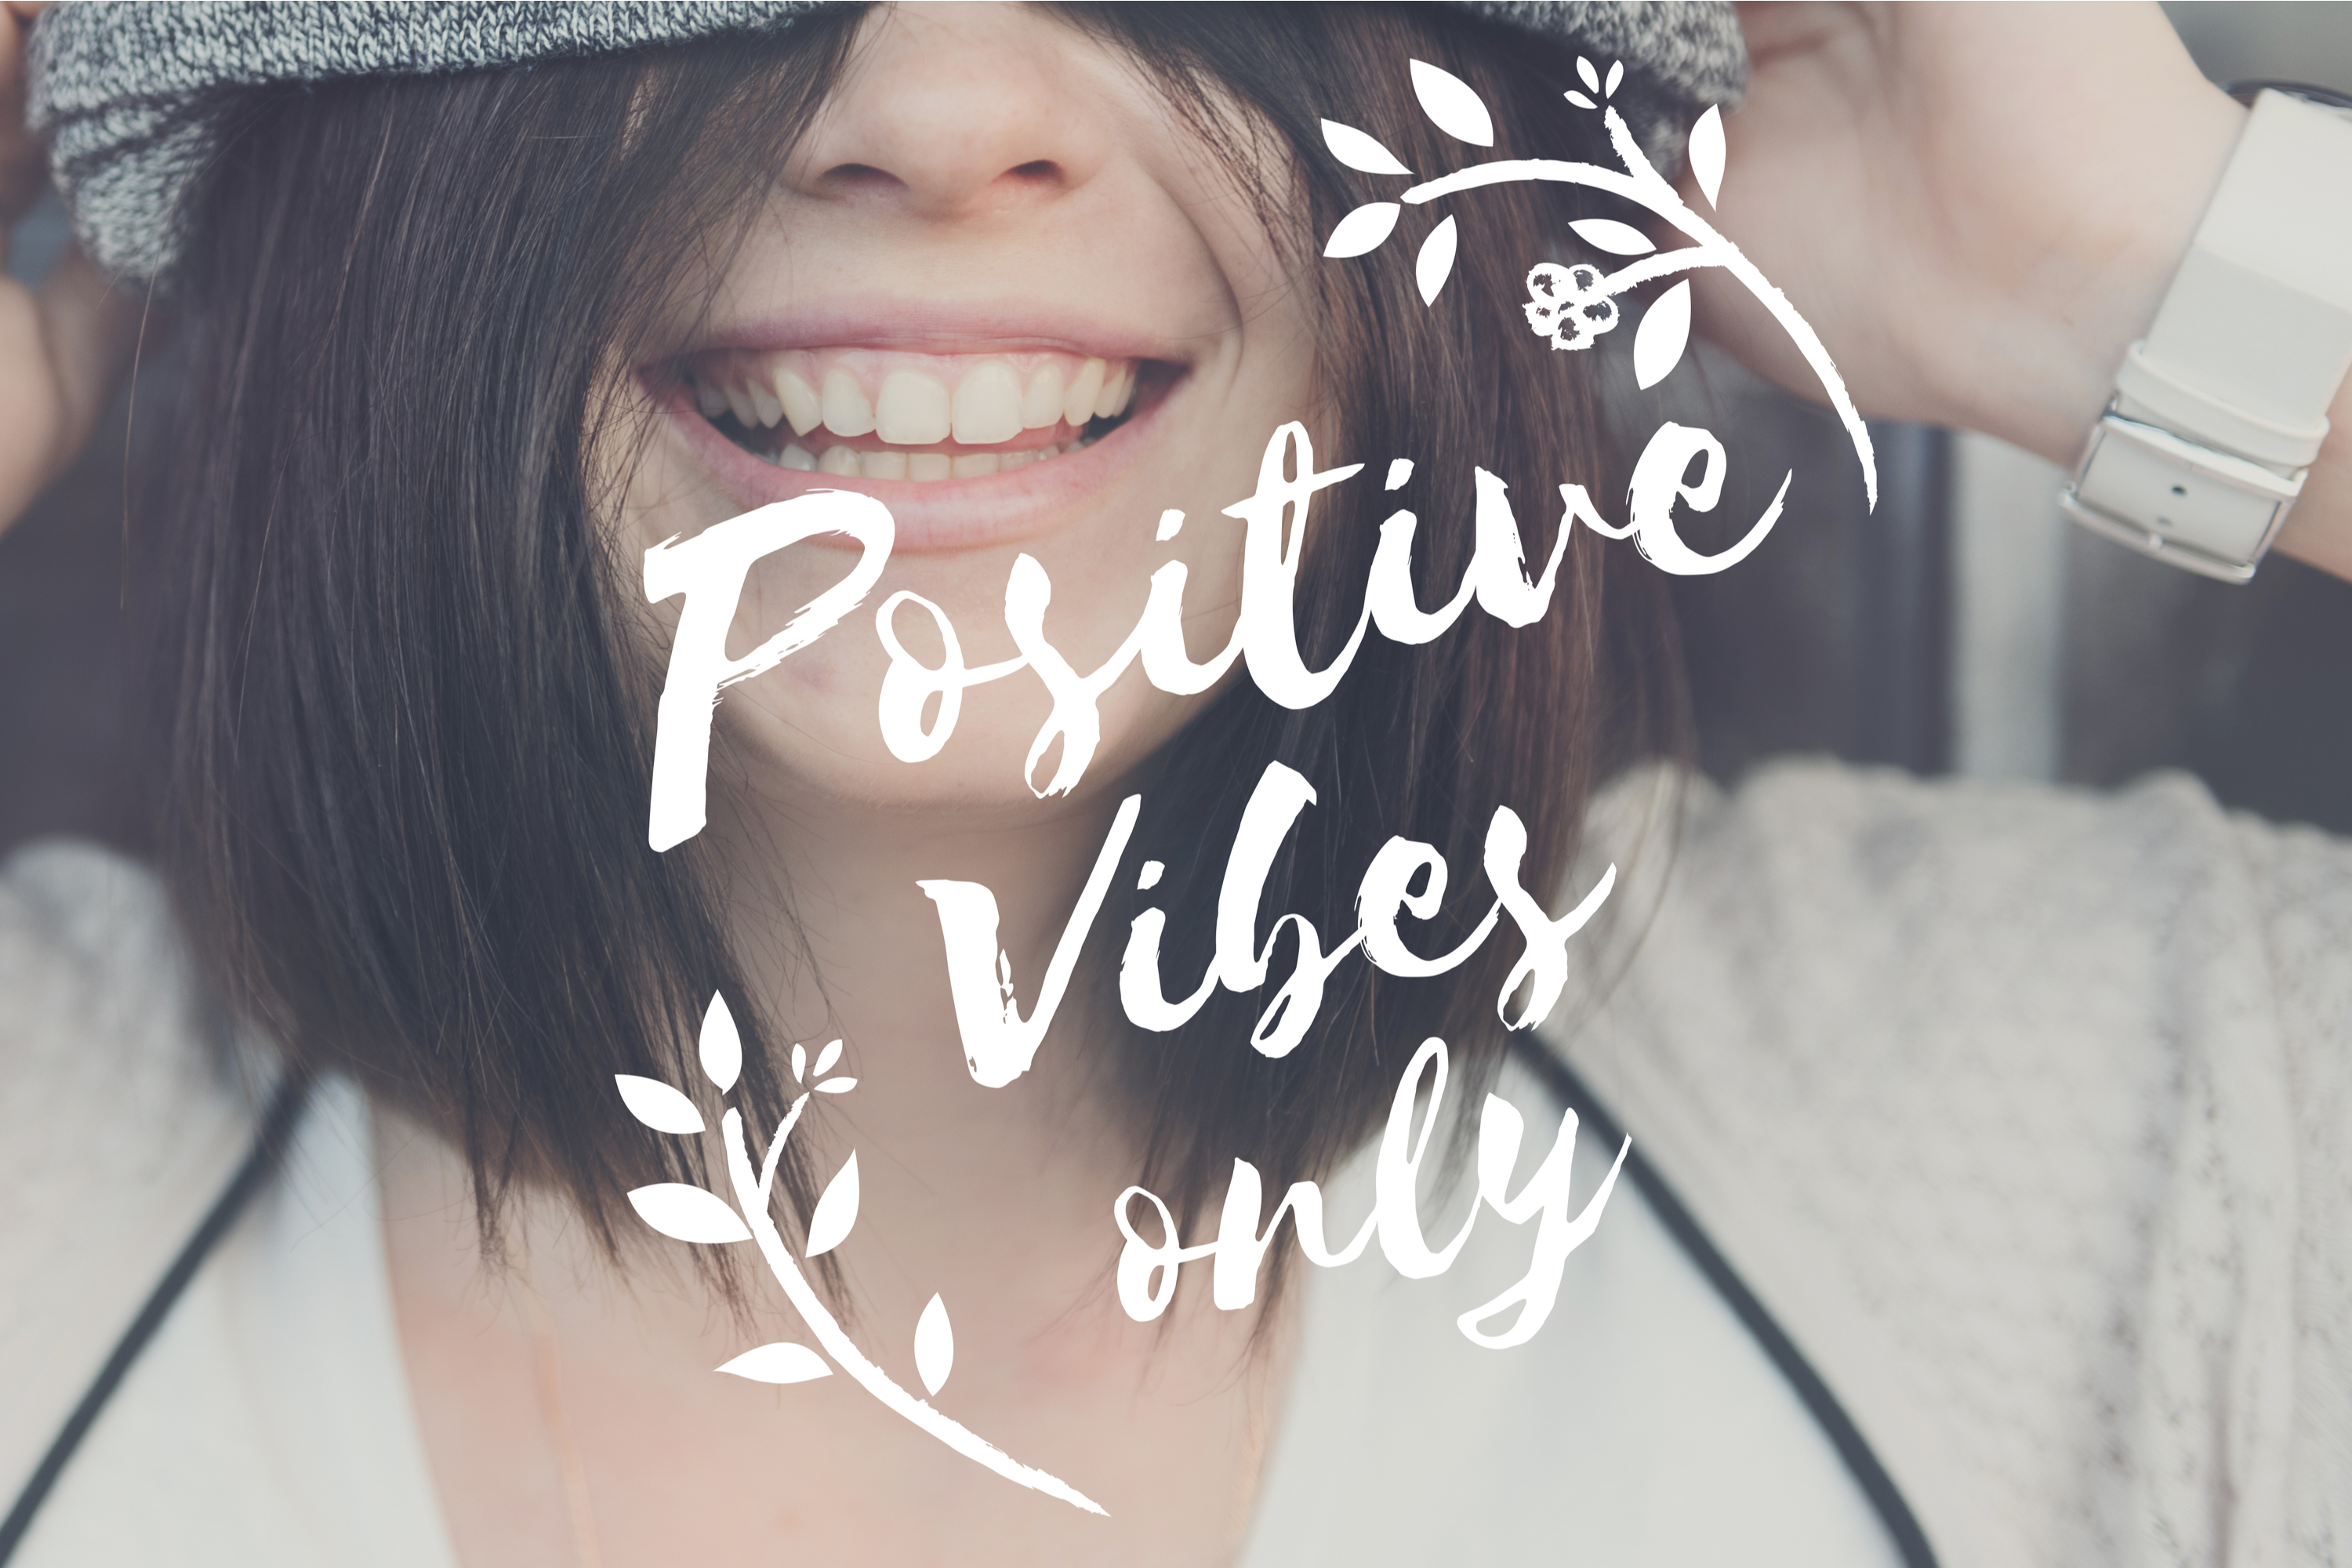 If you want to find positivity in life you should live by the moto positive vibes only